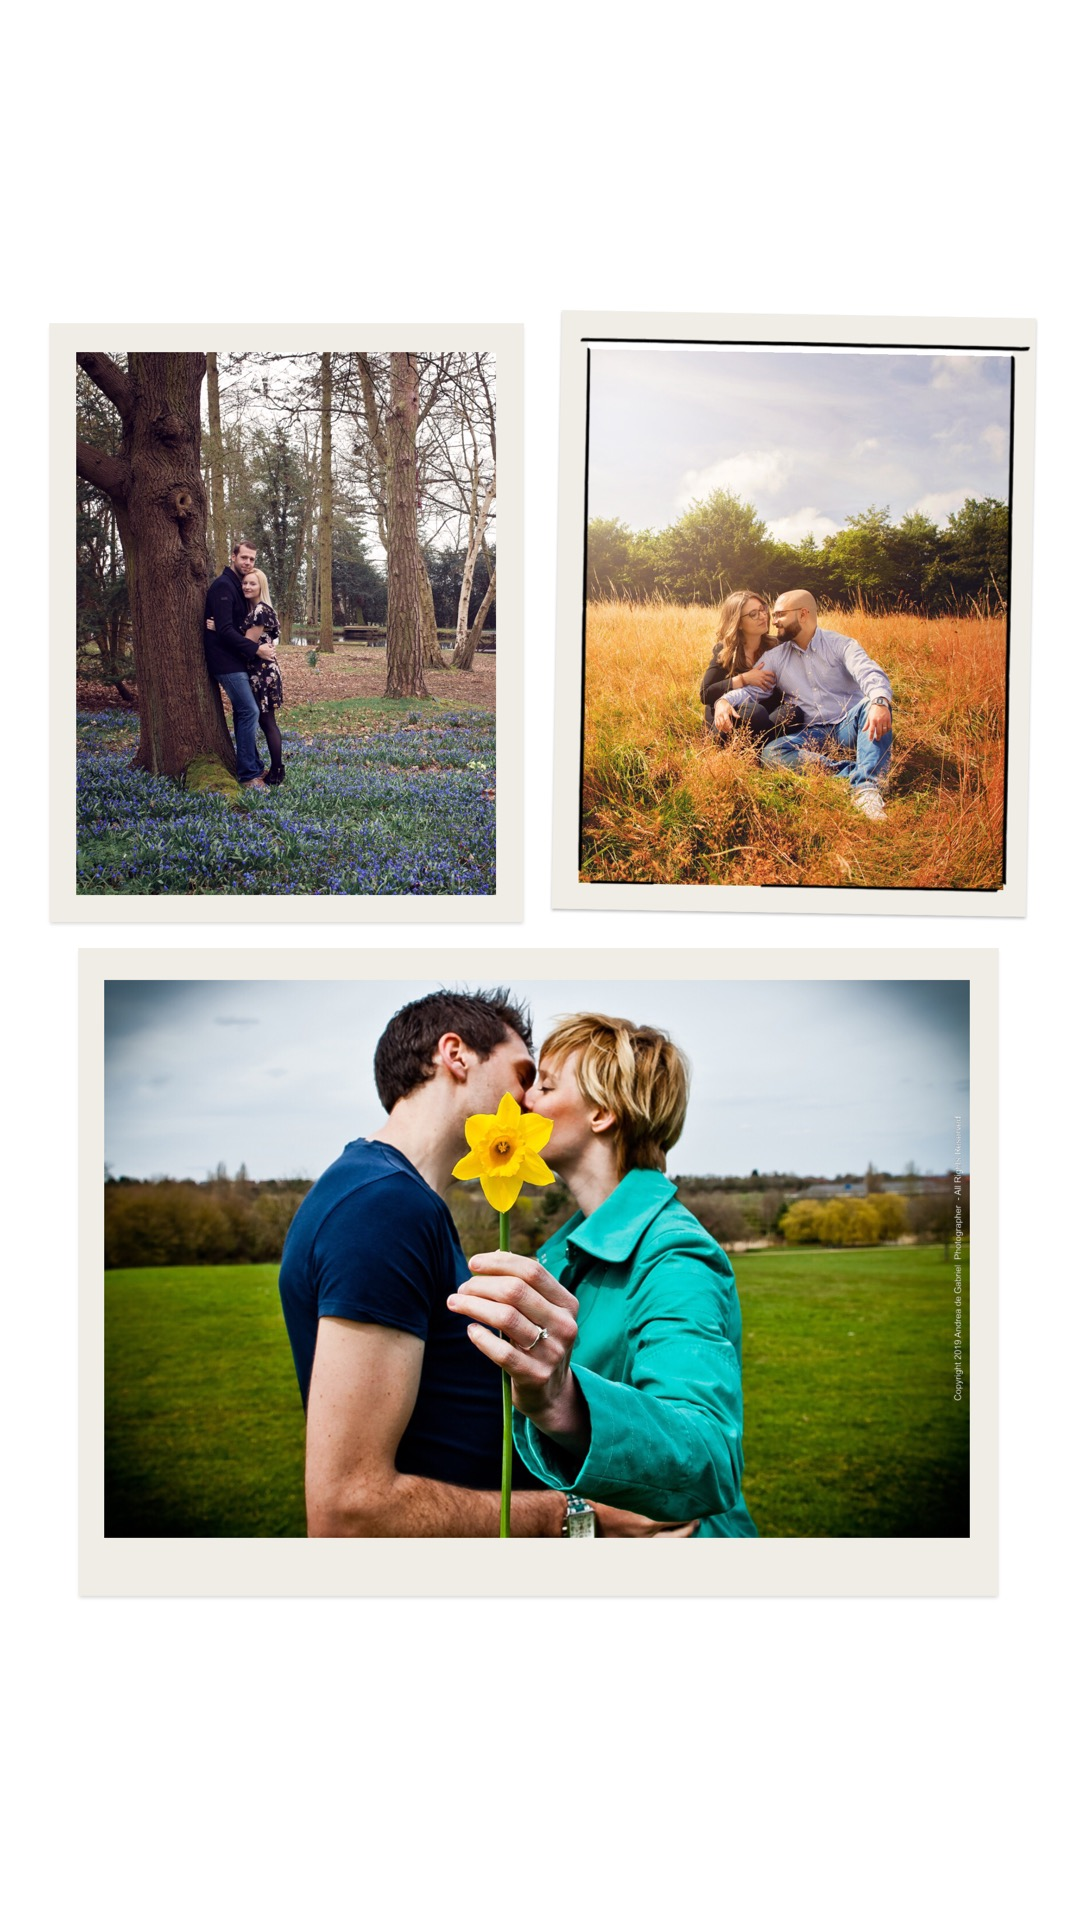 Tell Your Story - Show Your Story… - Whether you have been together for a year or twenty years, a Couple's Portrait Session is perfect to capture special memories.